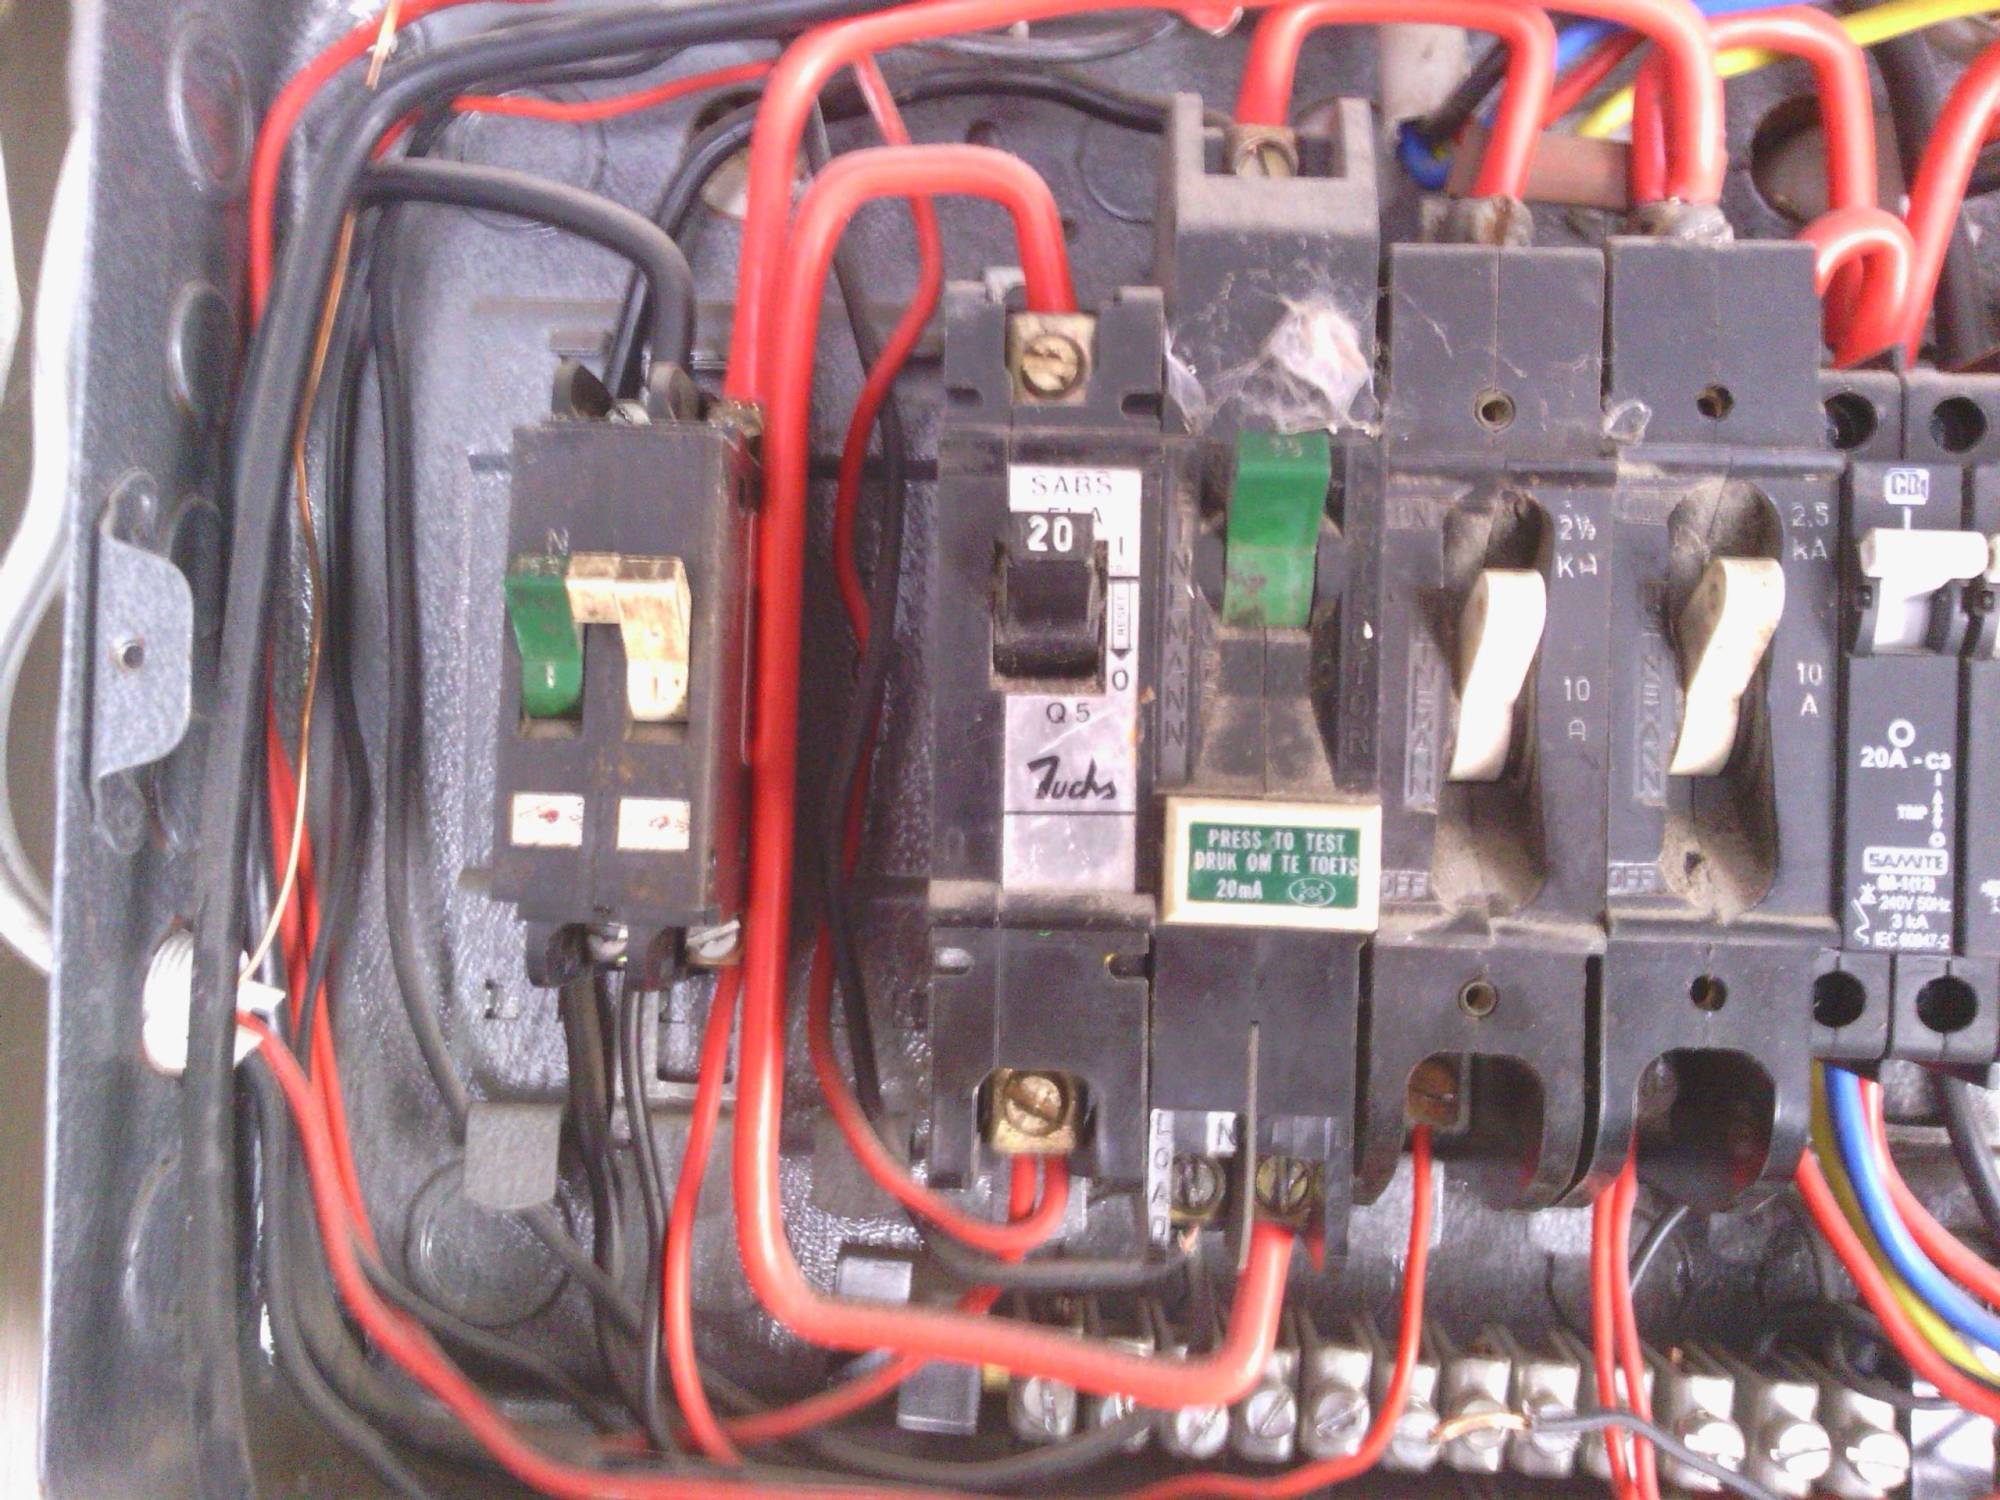 hight resolution of house wiring in south africa wiring diagram user domestic wiring south africa domestic electrical wiring south